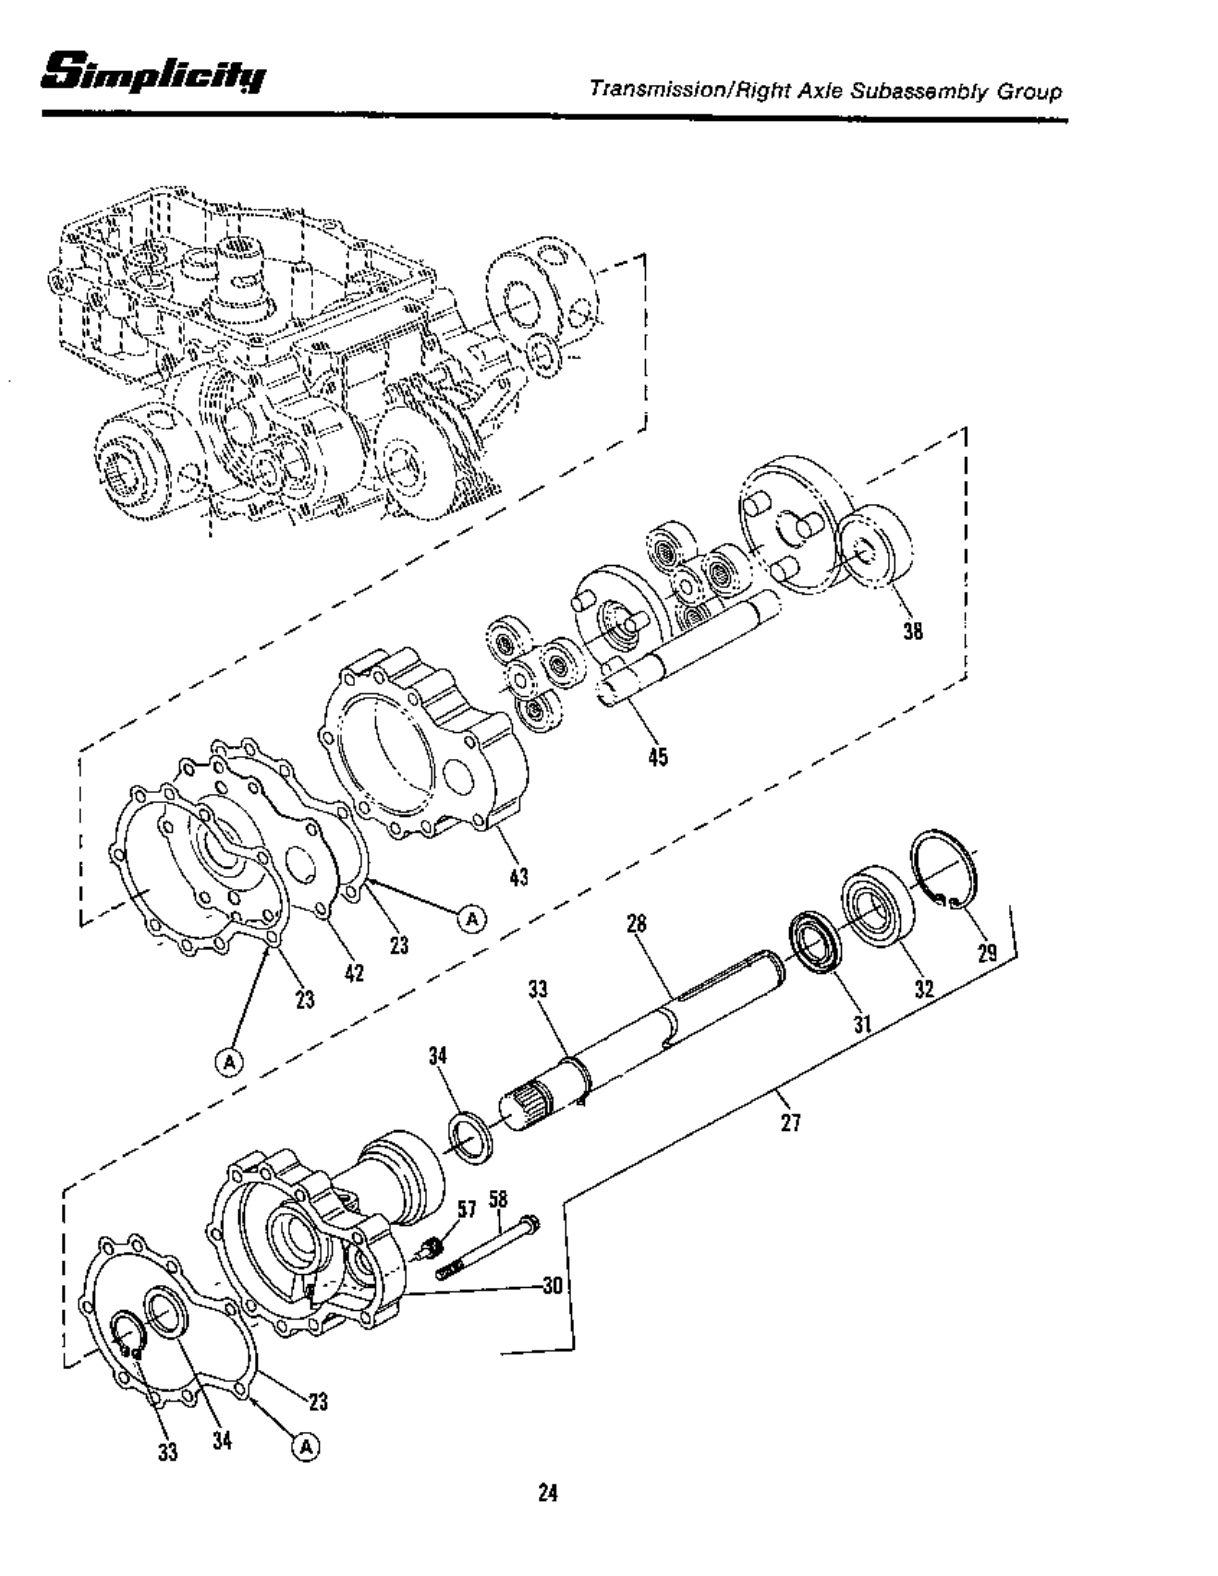 Page 26 of Simplicity Lawn Mower 12.5 LTH User Guide